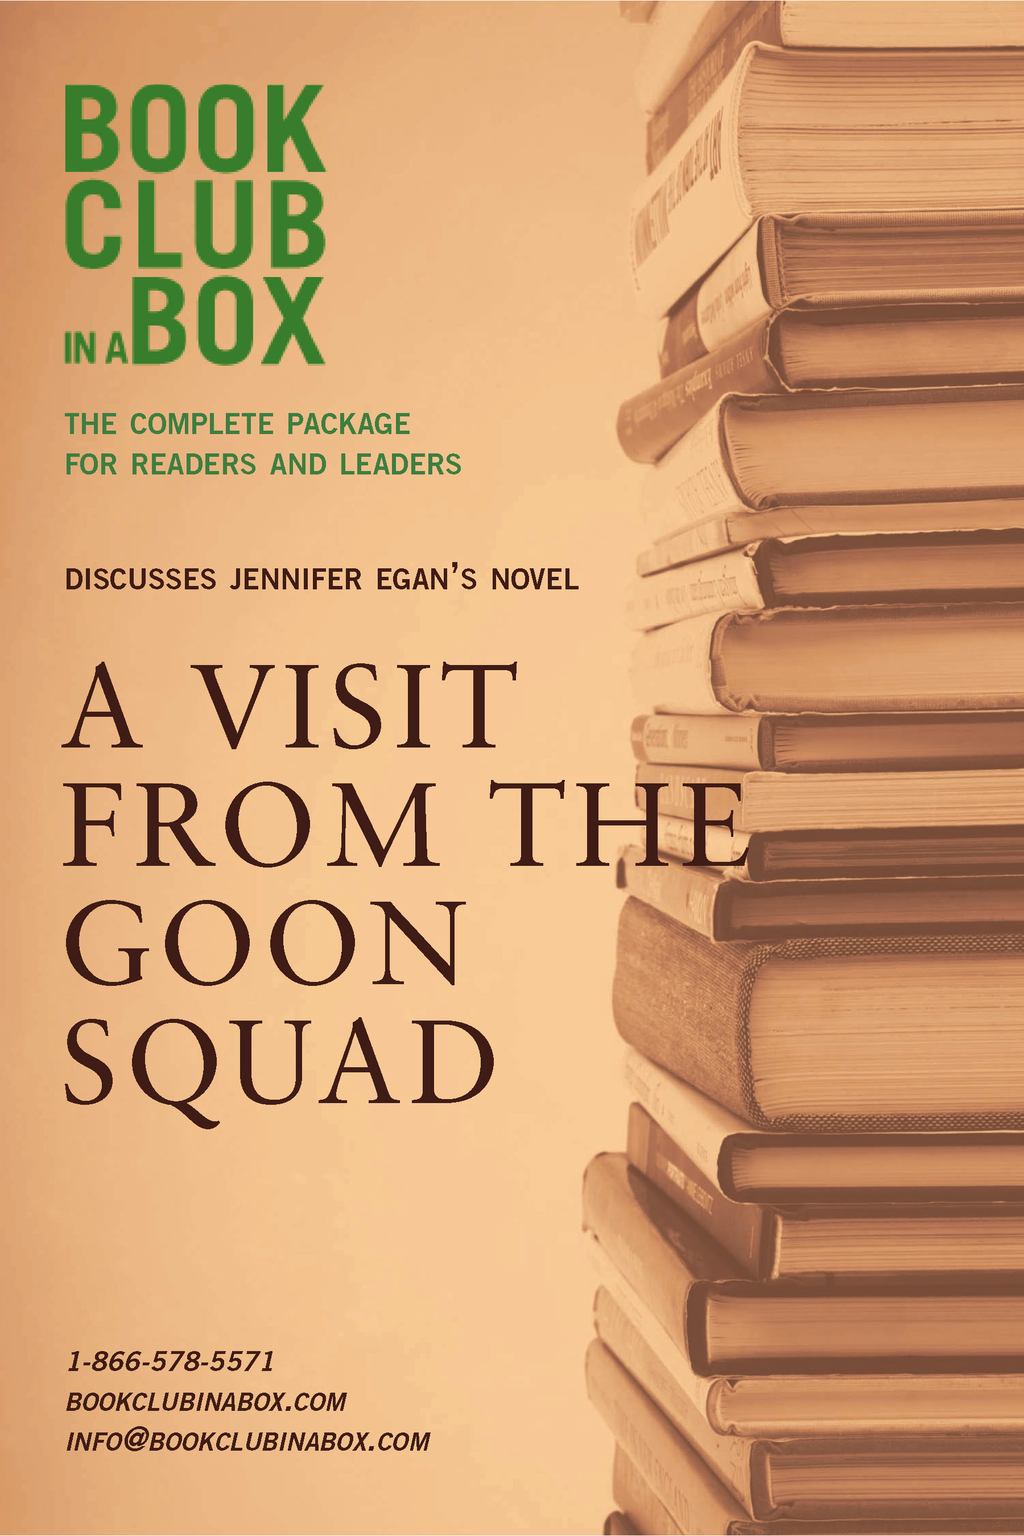 Bookclub-in-a-Box Discusses A Visit From The Goon Squad, by Jennifer Egan